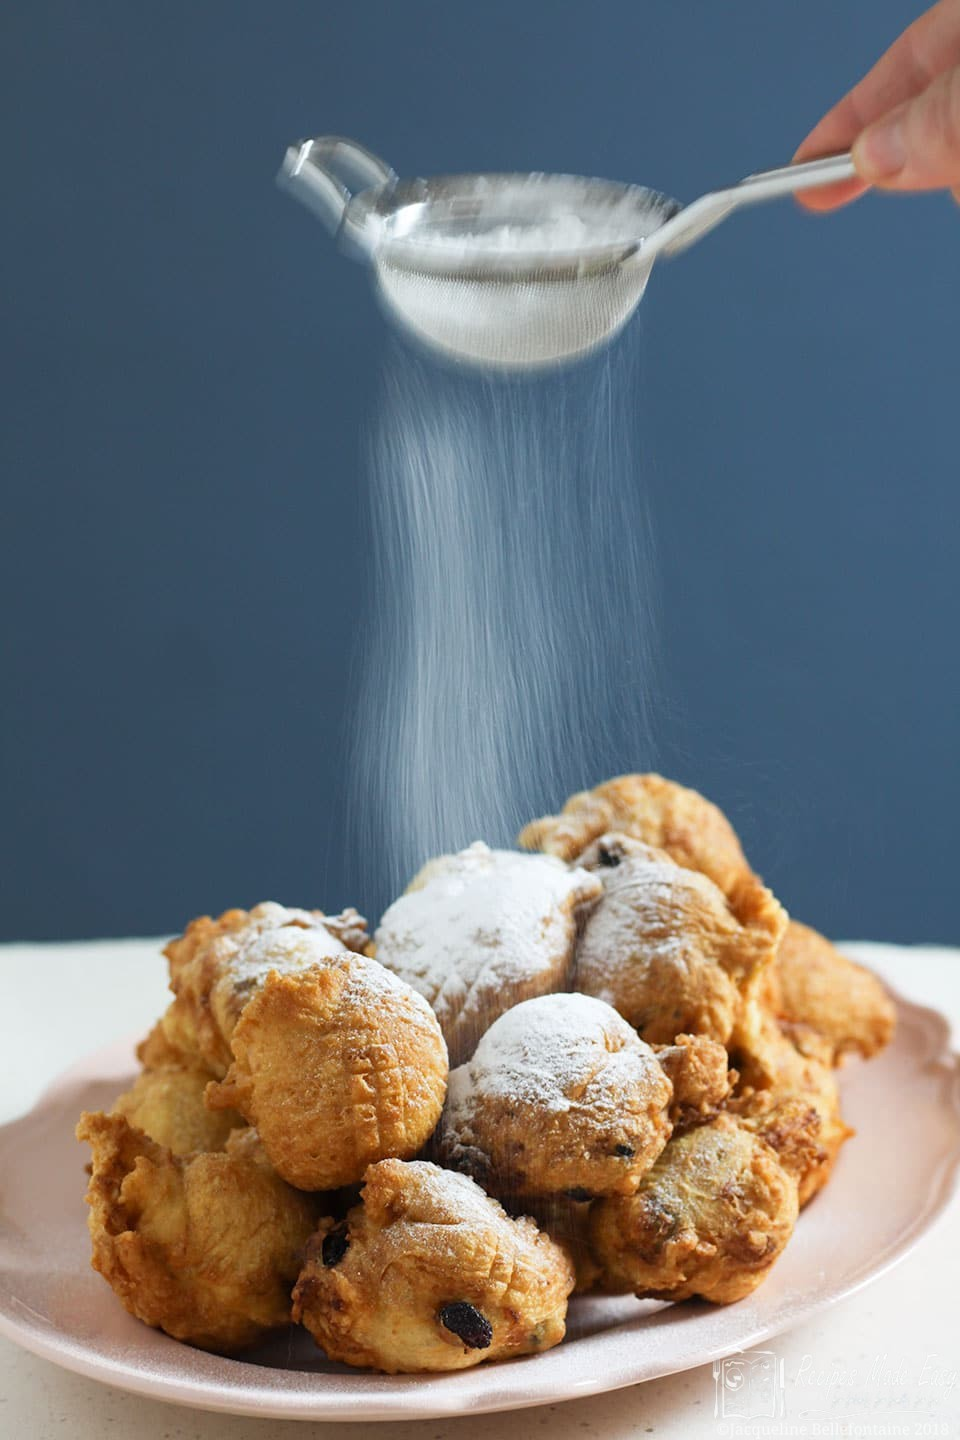 Recipes, Made Easy - Oliebollen (Dutch doughnuts) -delicious balls of dough deep fried and served dusted with icing sugar/